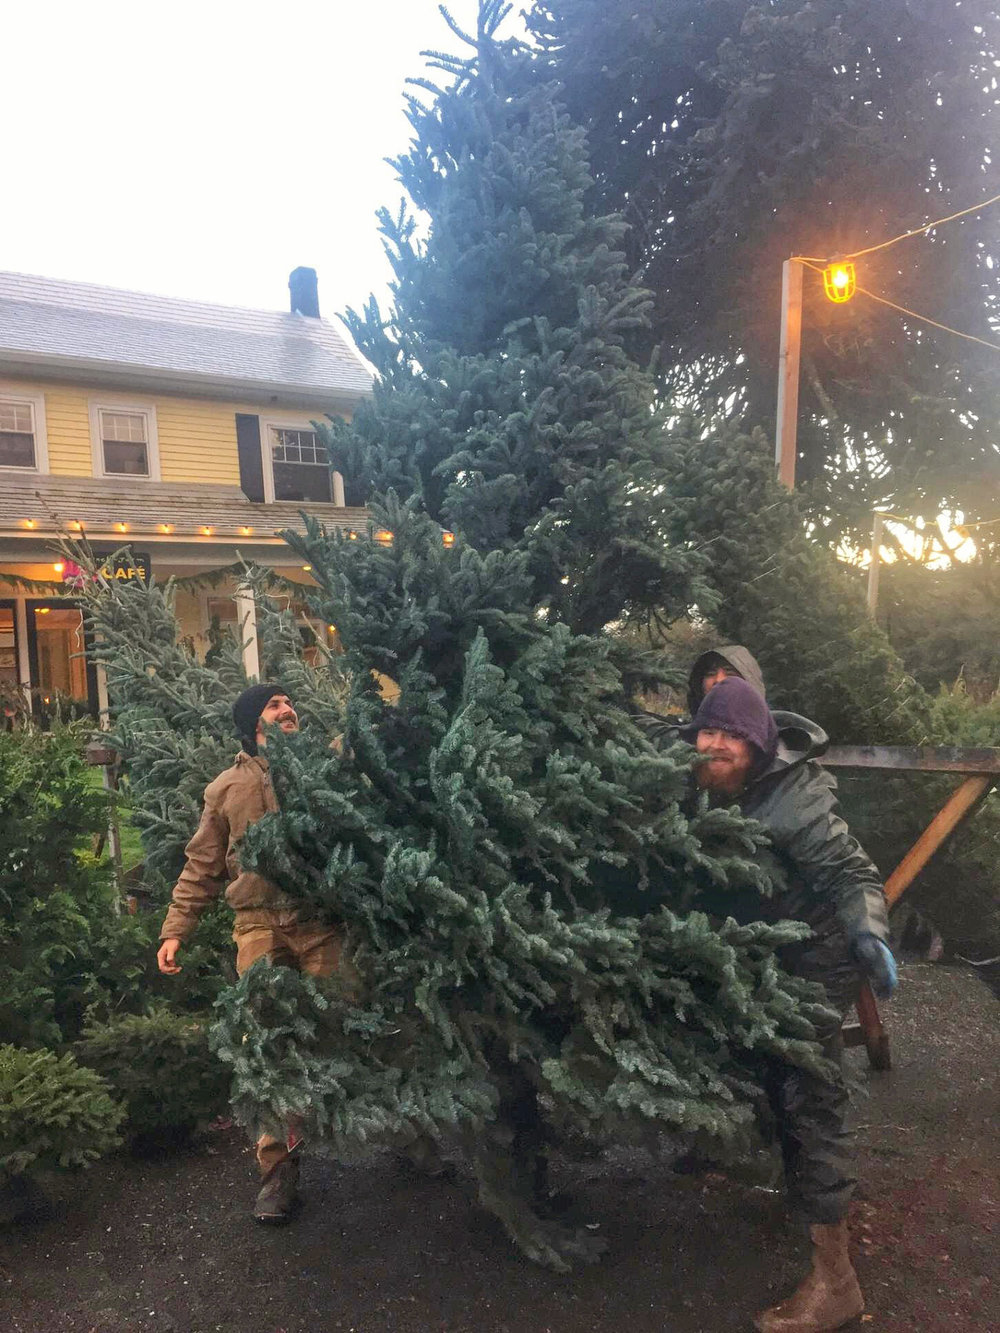 Huge Christmas Trees: we bring in Noble Firs up to 13 feet tall! We can either load it on or in your vehicle, or deliver and set it up in your home or office.